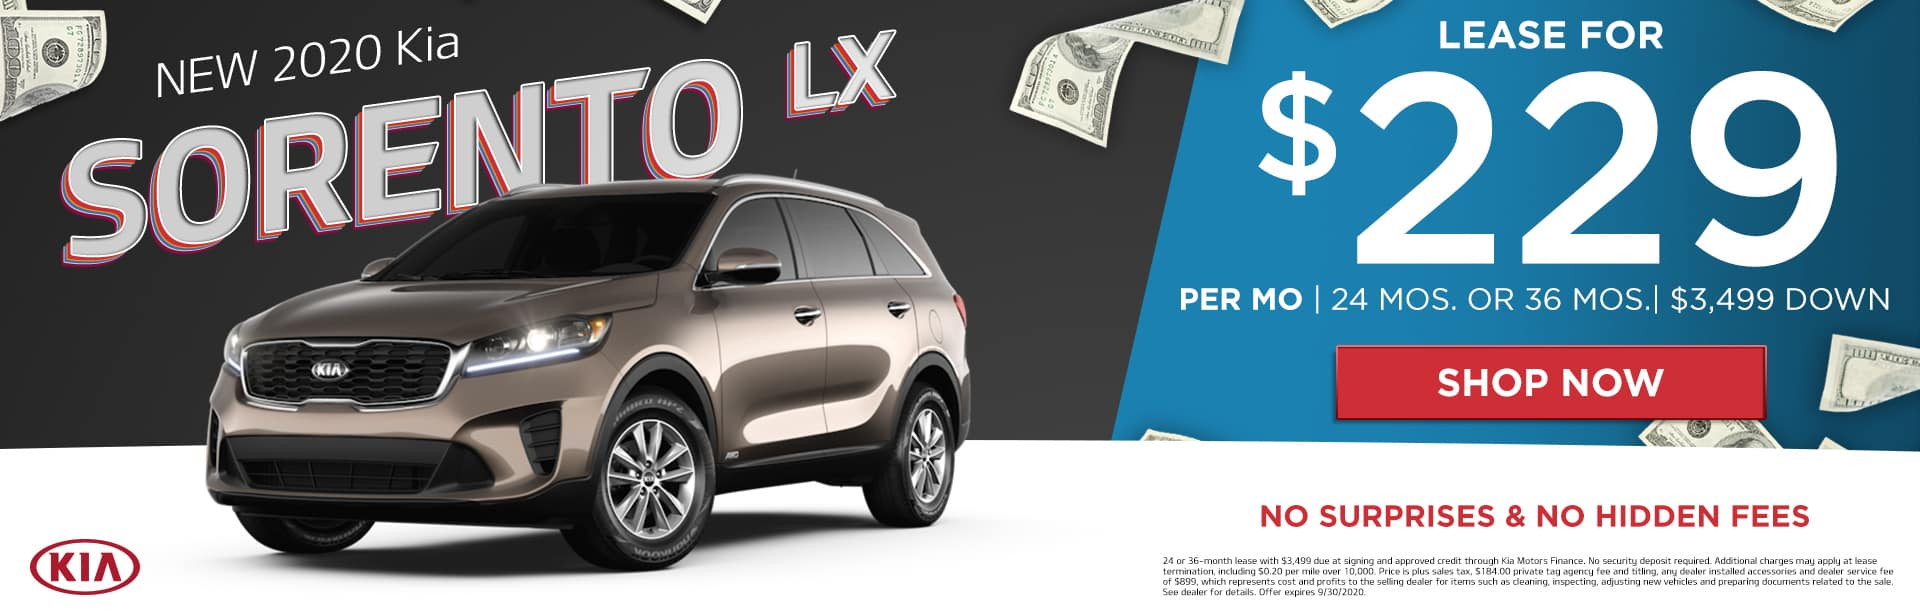 New 2020 Kia Sorento LX | Lease For $229 Per Month | 24 Months or 36 Months | $3,499 Down | No Surprises & No Hidden Fees